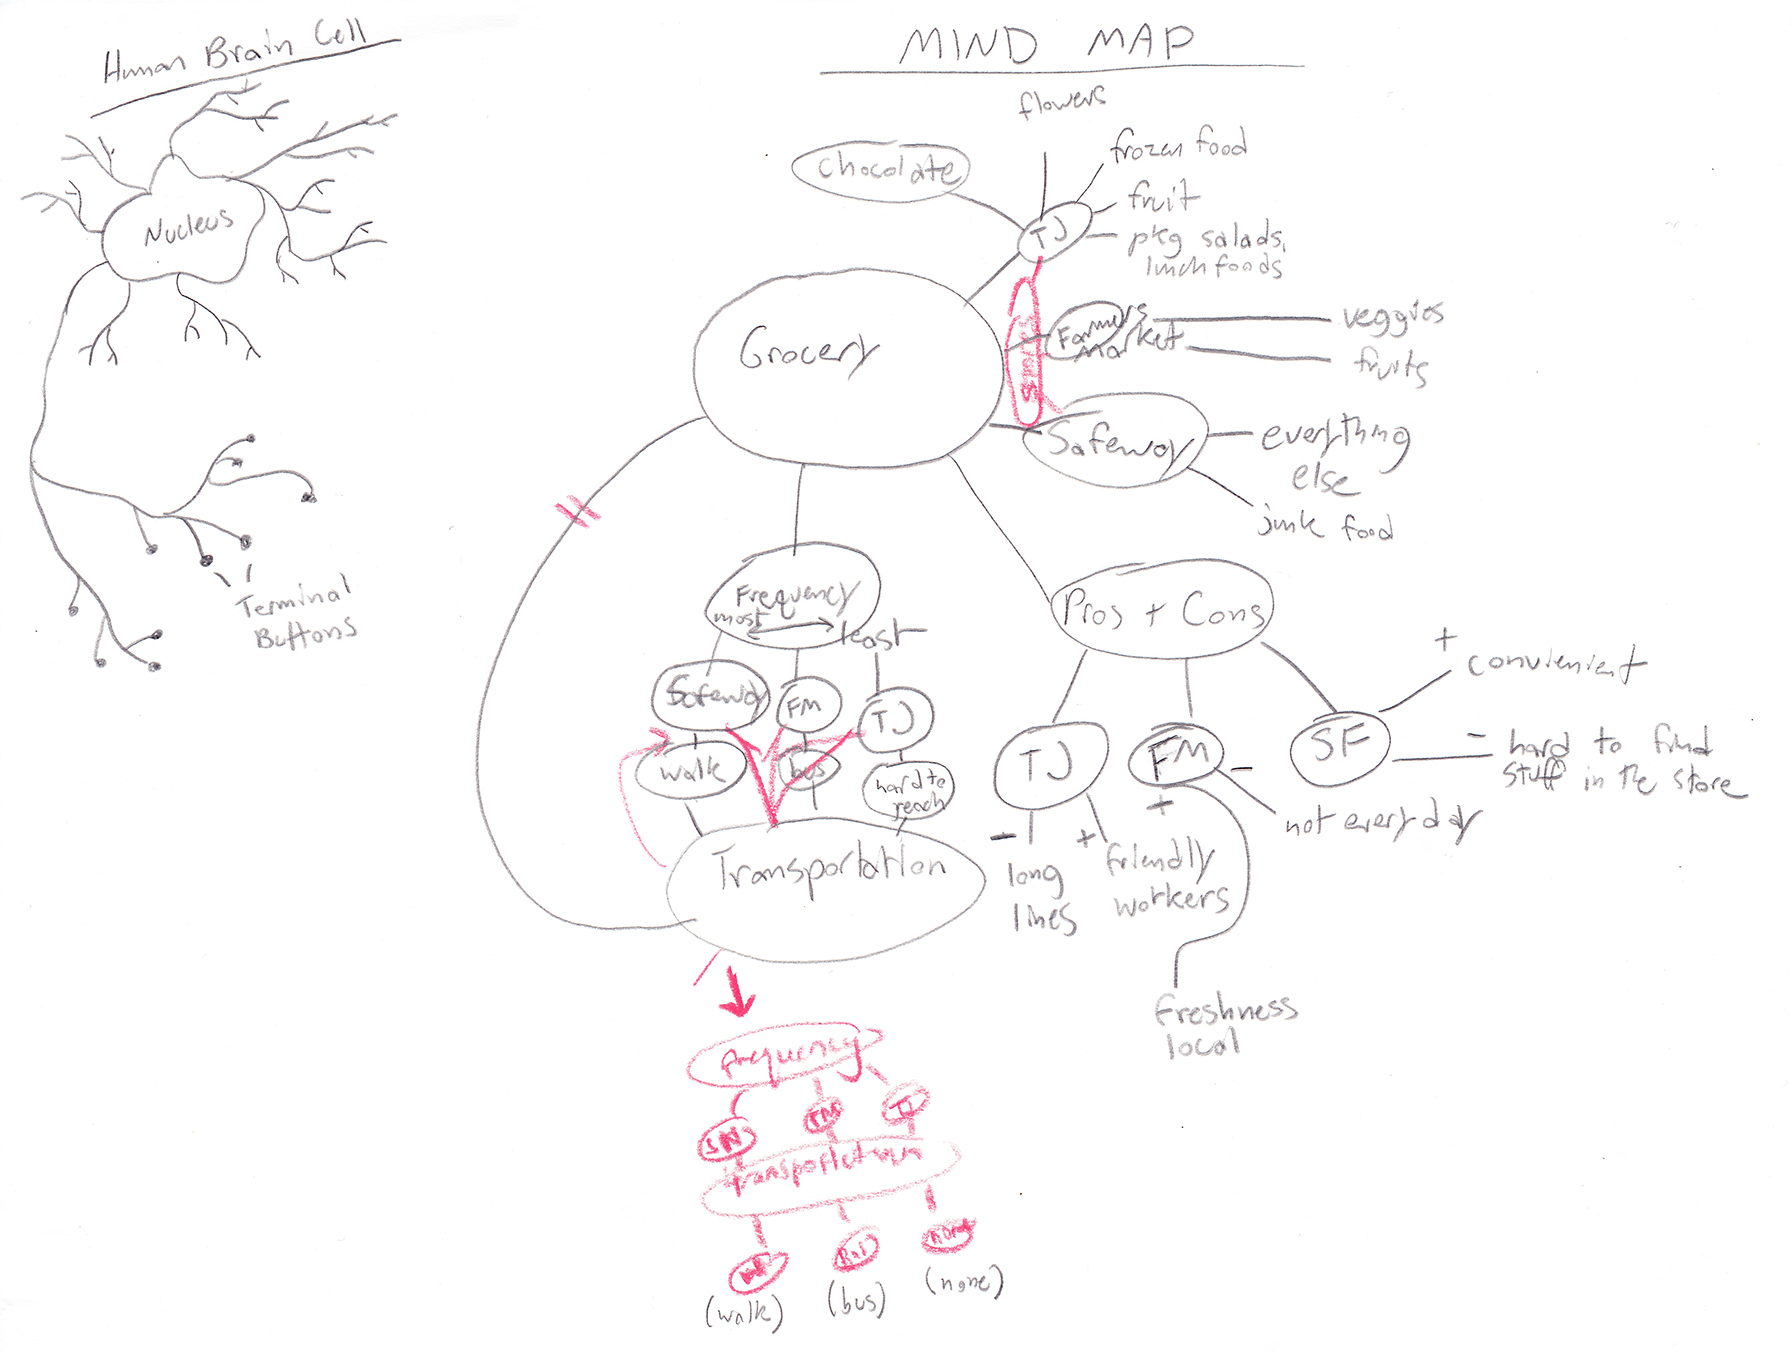 Collaborative mindmapping for a ridesharing app.